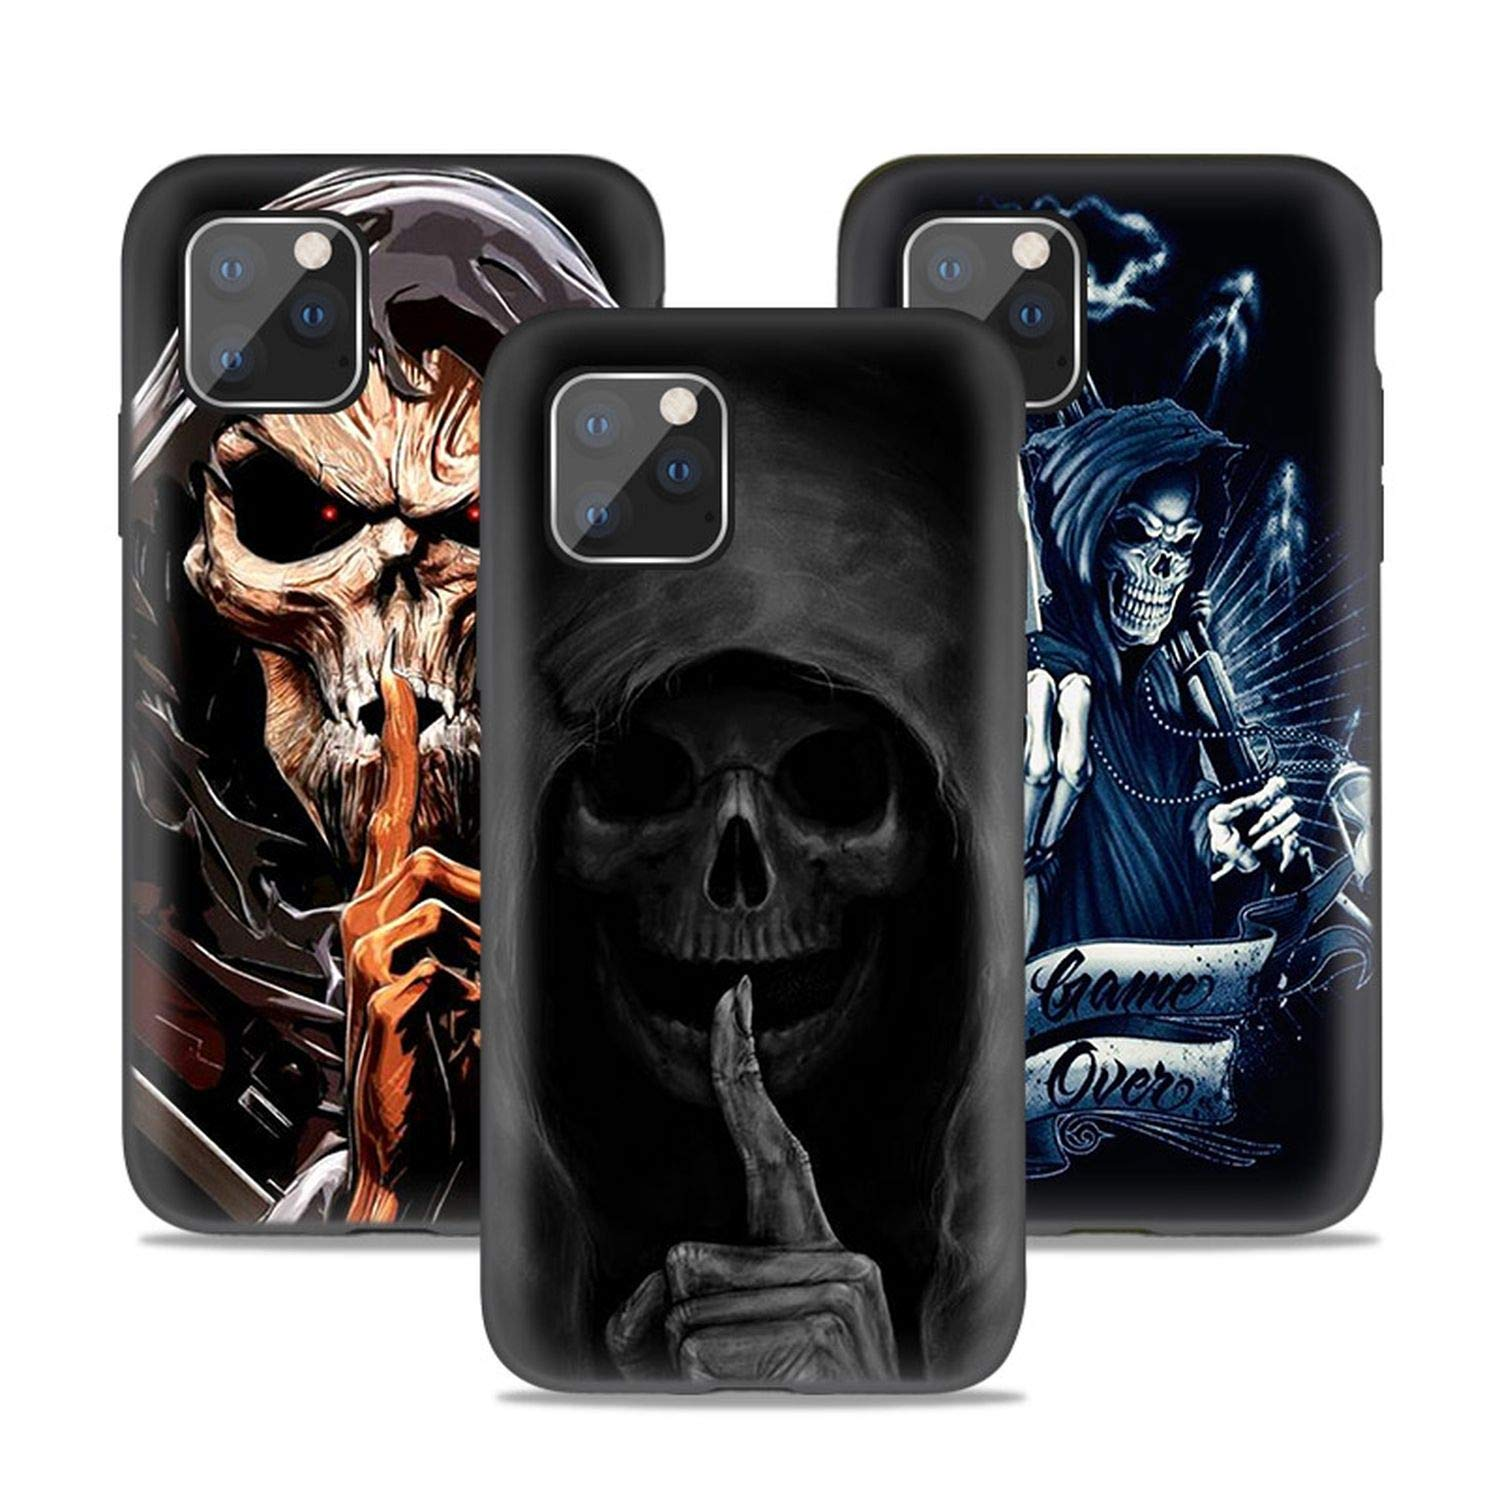 Grim Reaper Skull Case for iPhone 11 Pro XS Max XR X 10 7 8 6 6S Plus 5S 5 SE 7S Black Silicone Phone Coque Cover Fundas Capa,for iPhone XR,B05